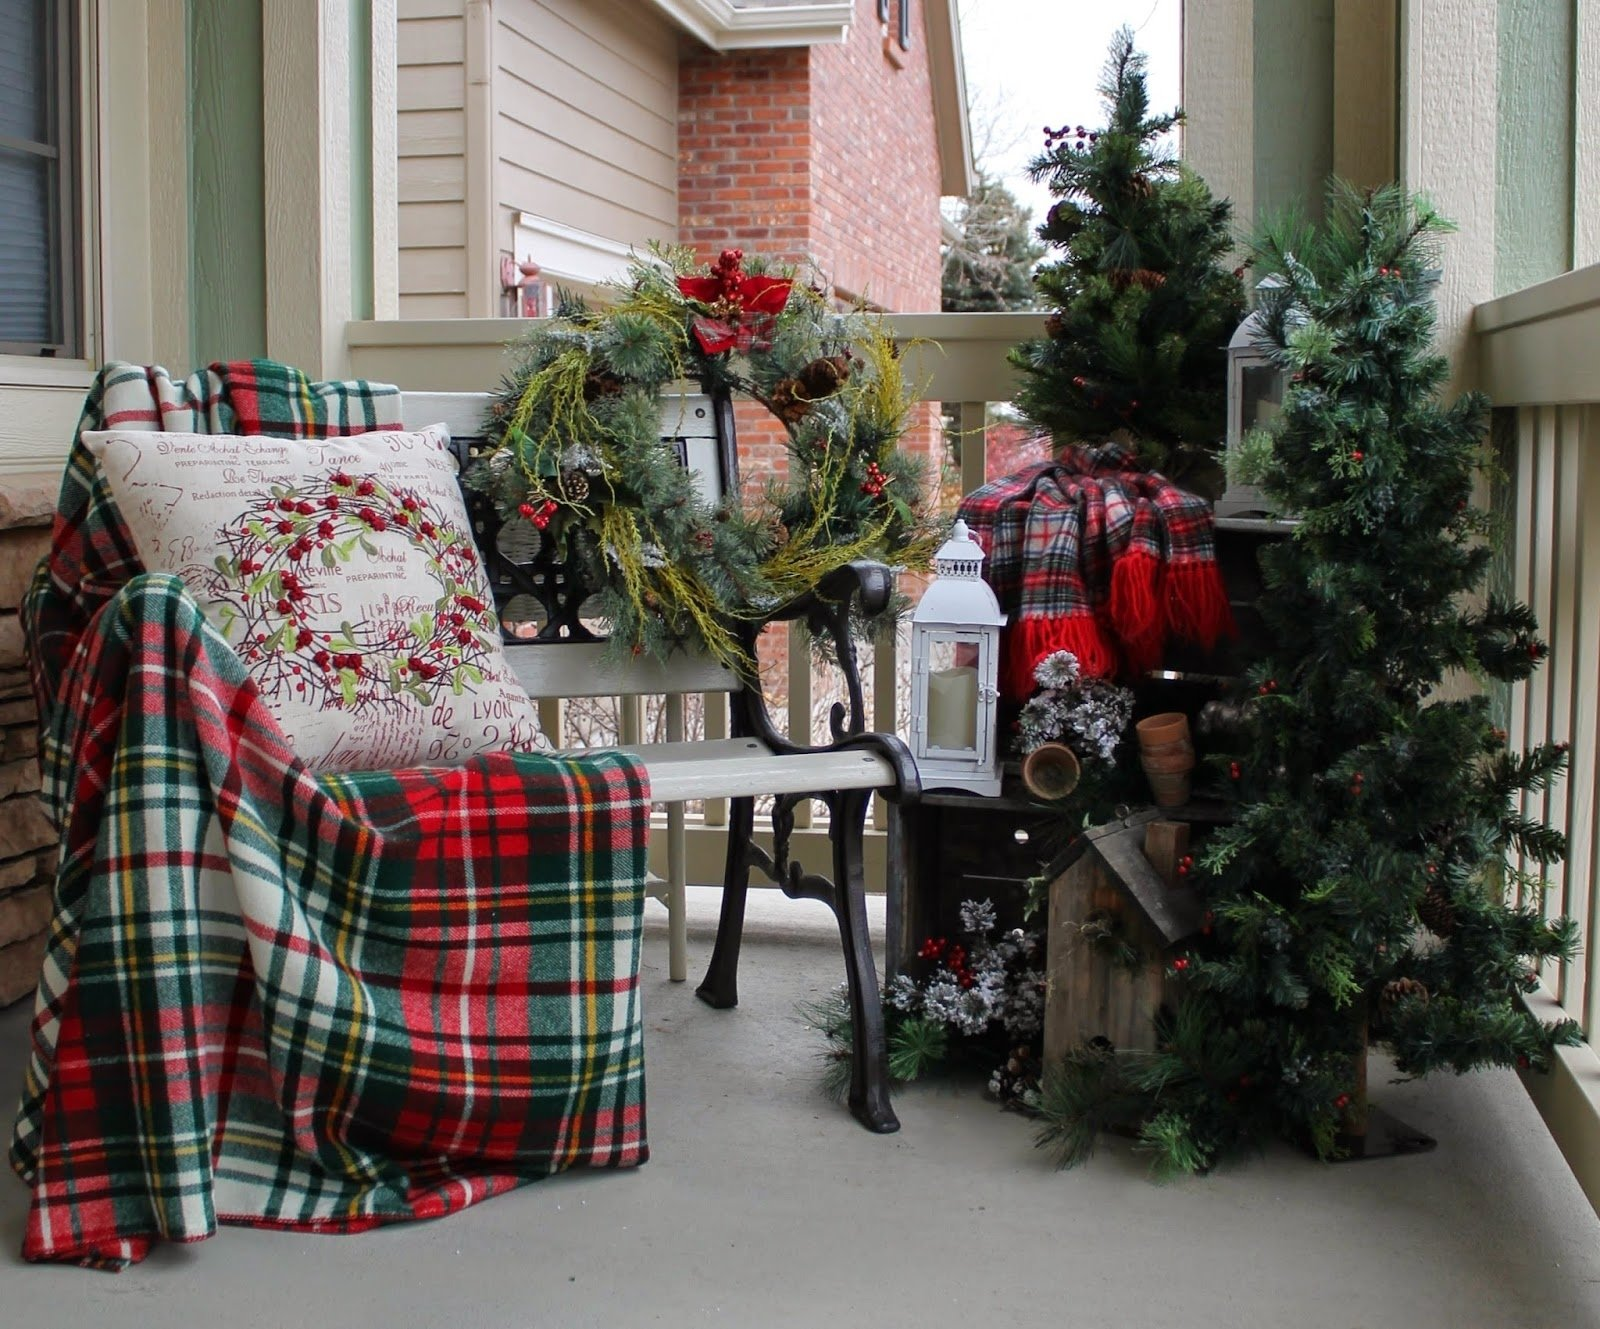 10 Nice Front Porch Christmas Decorating Ideas amazing front porch christmas decorating ideas front porch light 2020